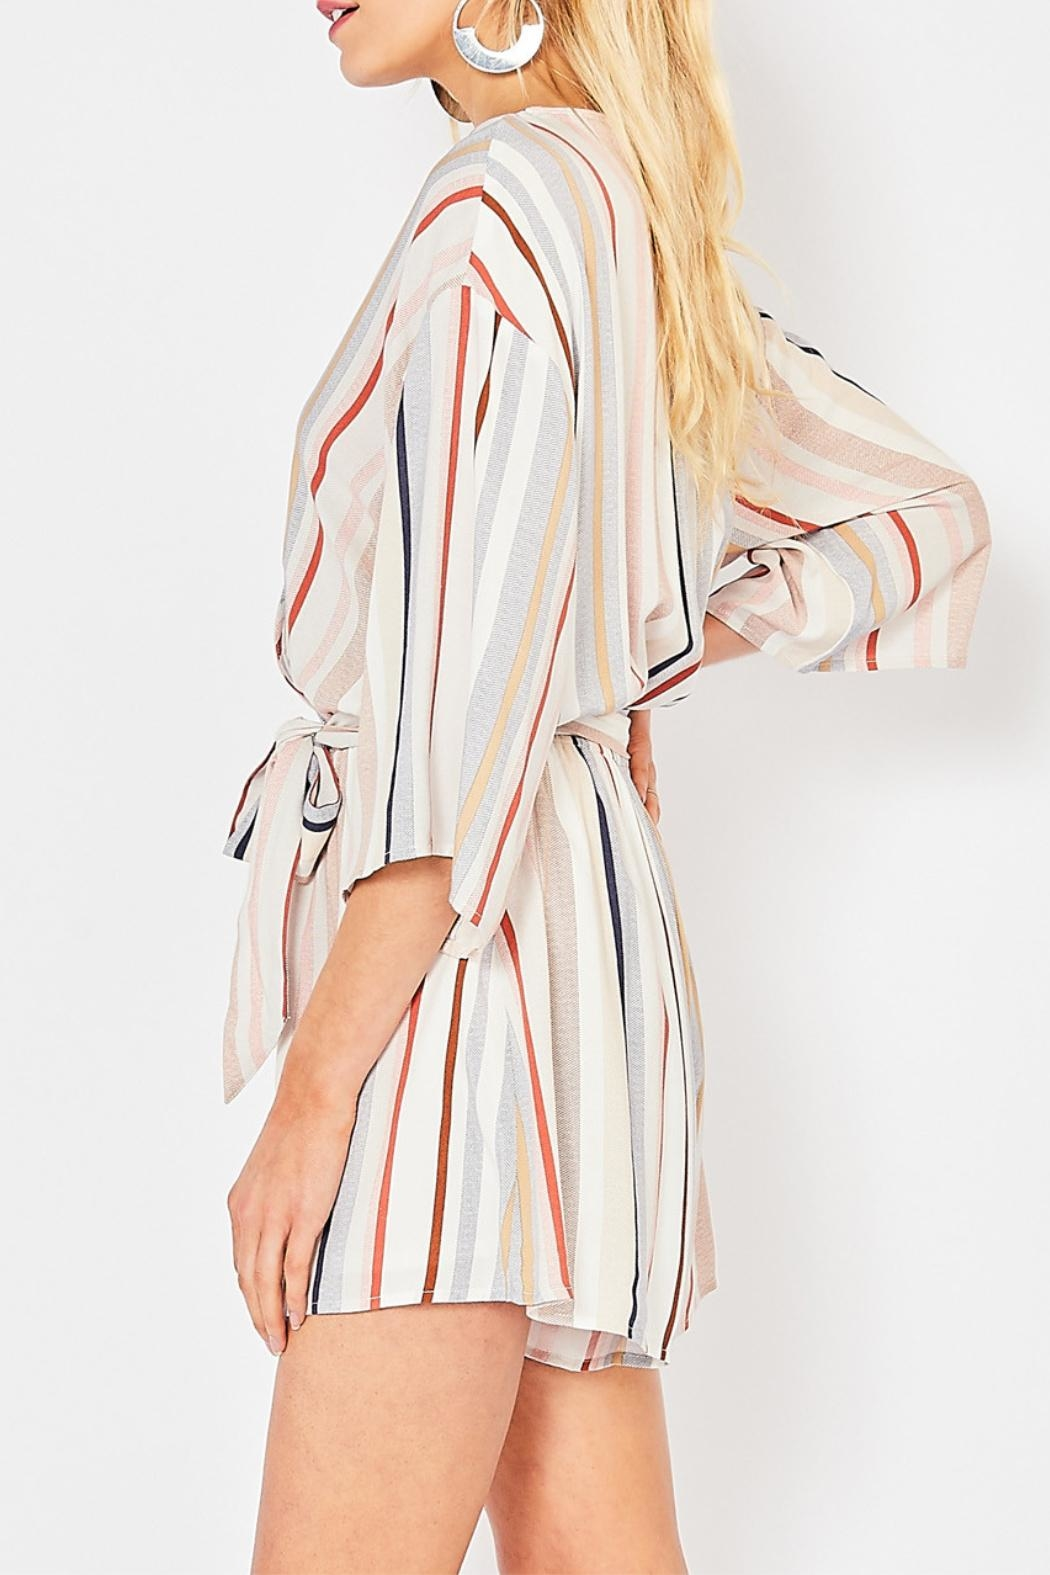 Entro Striped V-Neck Romper - Front Full Image